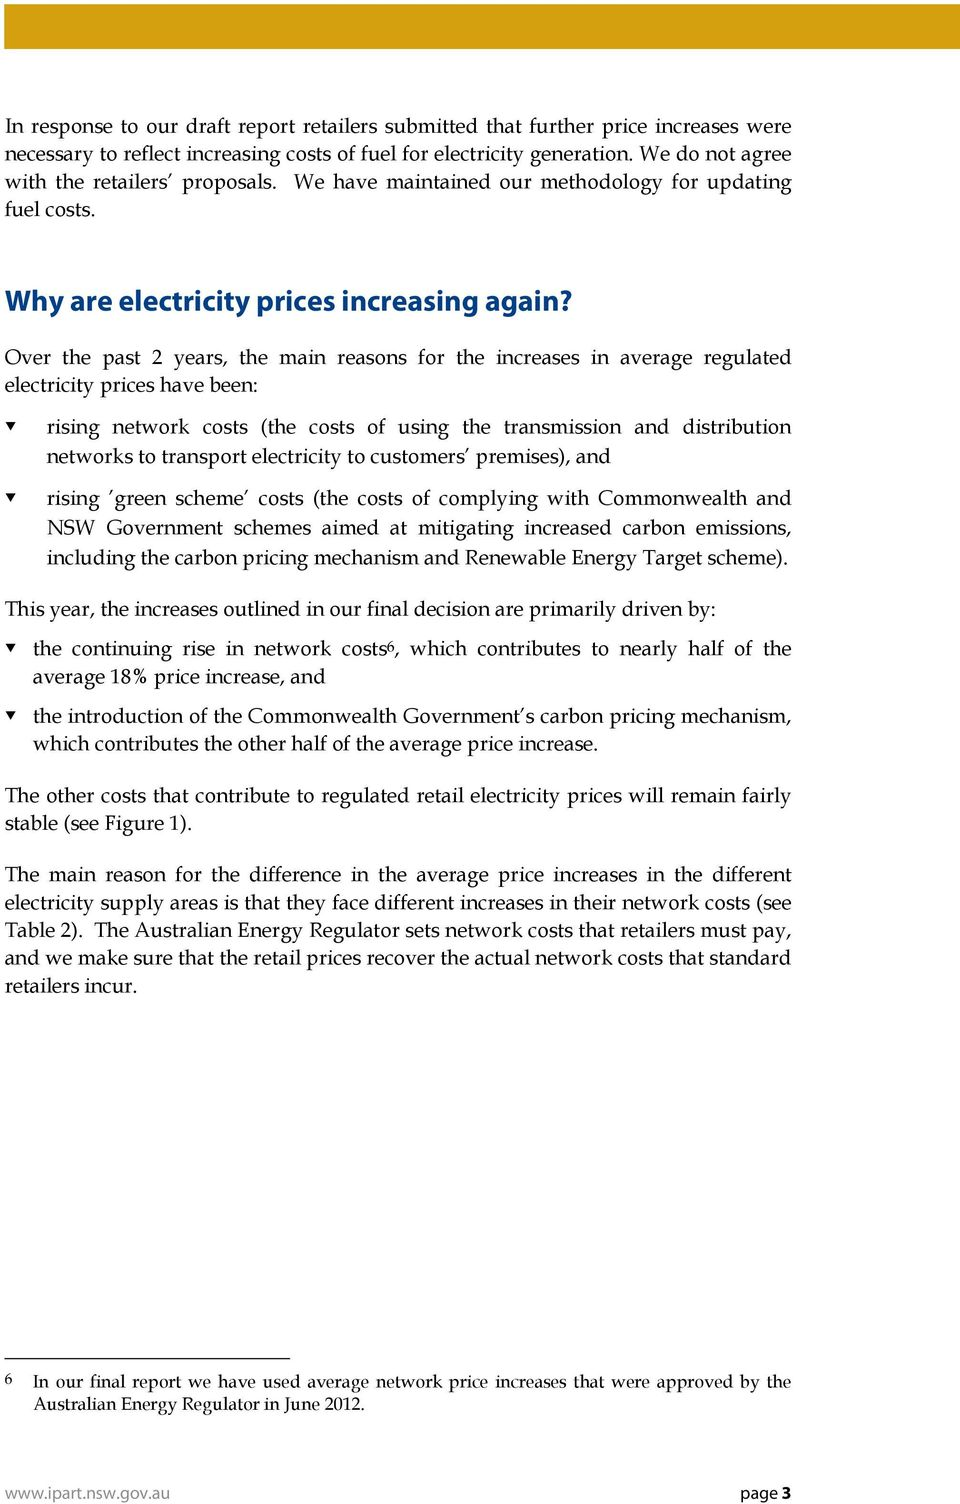 Over the past 2 years, the main reasons for the increases in average regulated electricity prices have been: rising network costs (the costs of using the transmission and distribution networks to